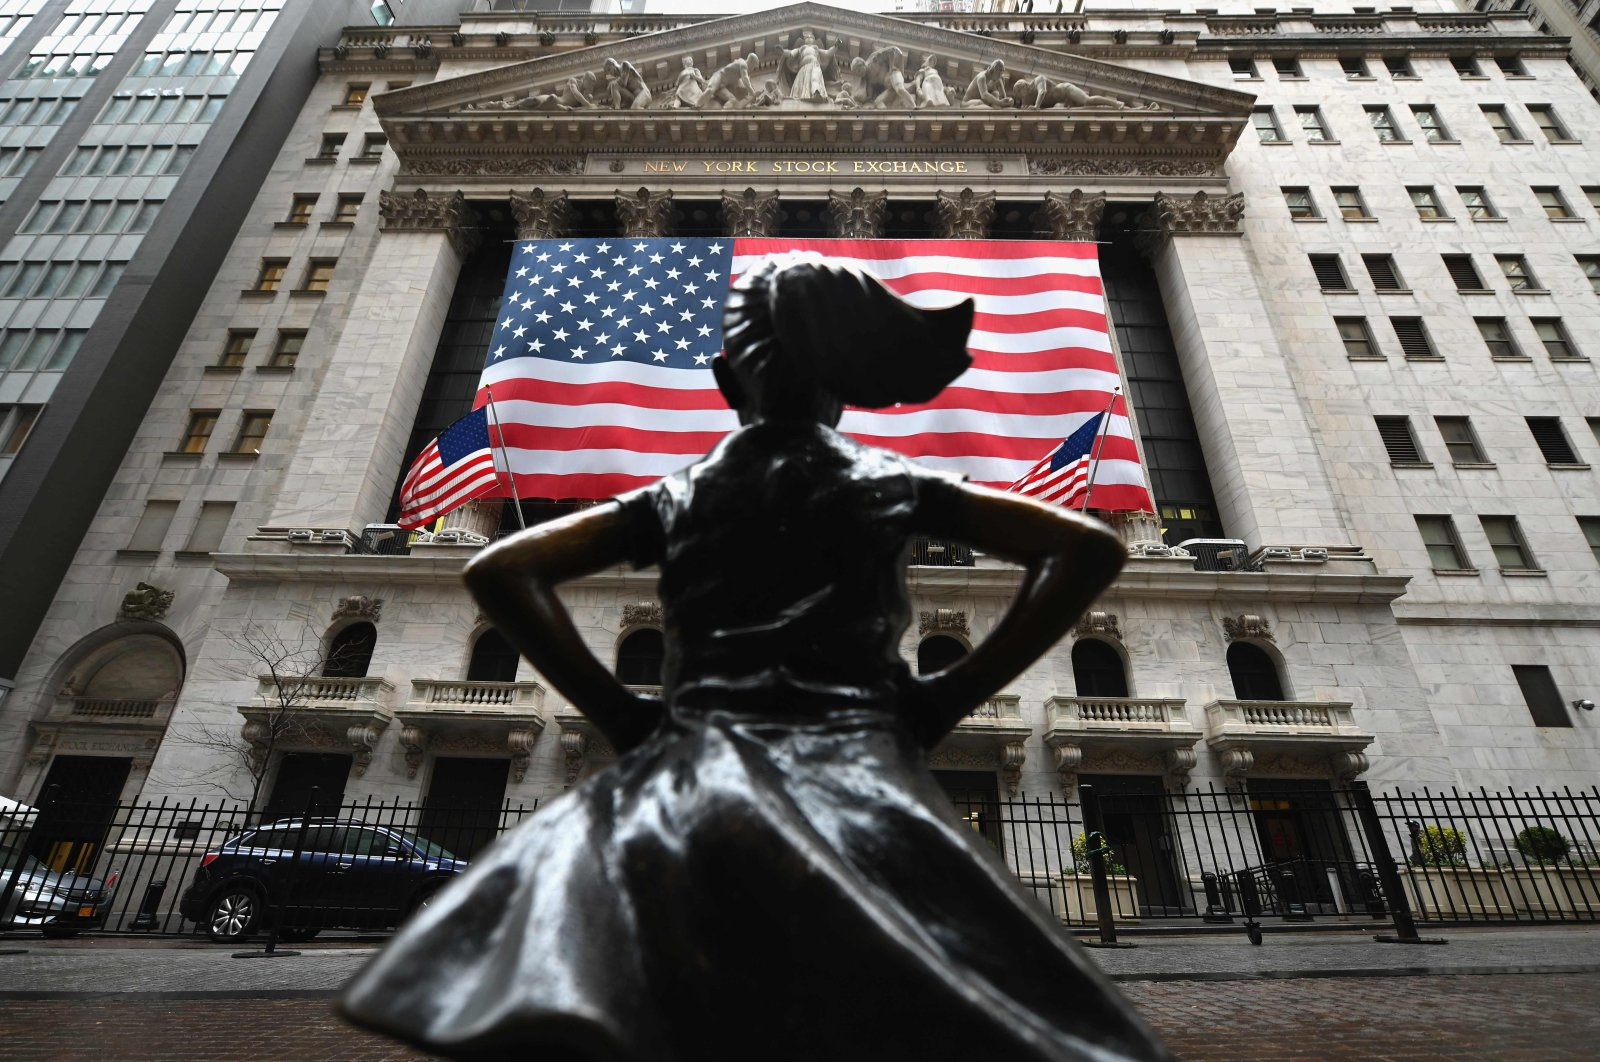 """""""The Fearless Girl"""" statue stands in front of the New York Stock Exchange near Wall Street on Monday, March 23, 2020, New York City, New York. (AFP Photo)"""